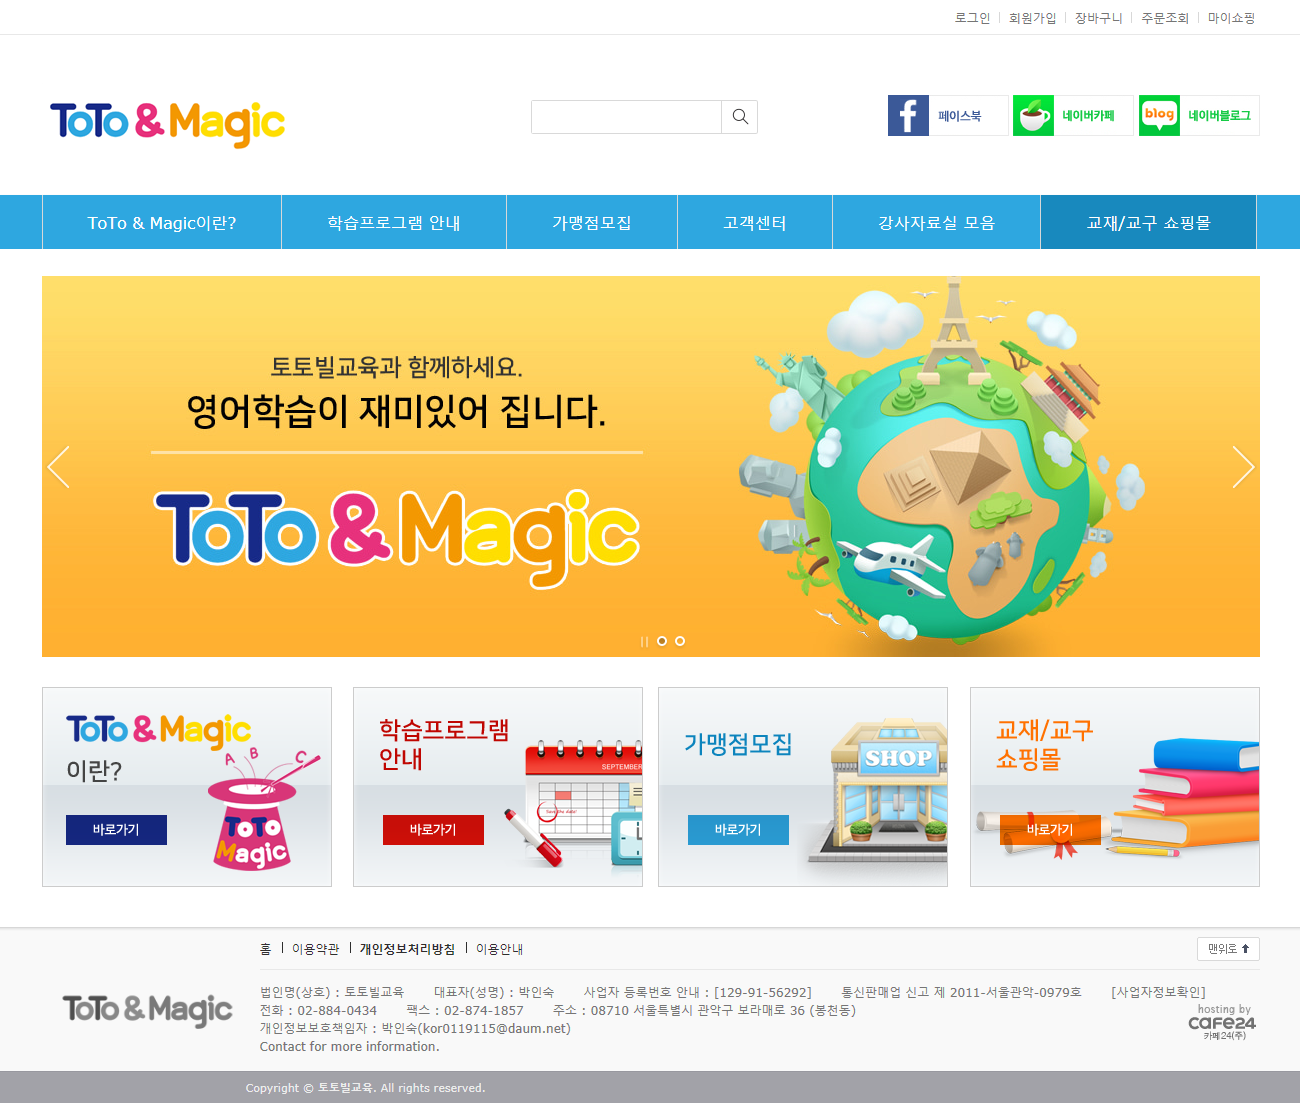 totomagic.co.kr.png